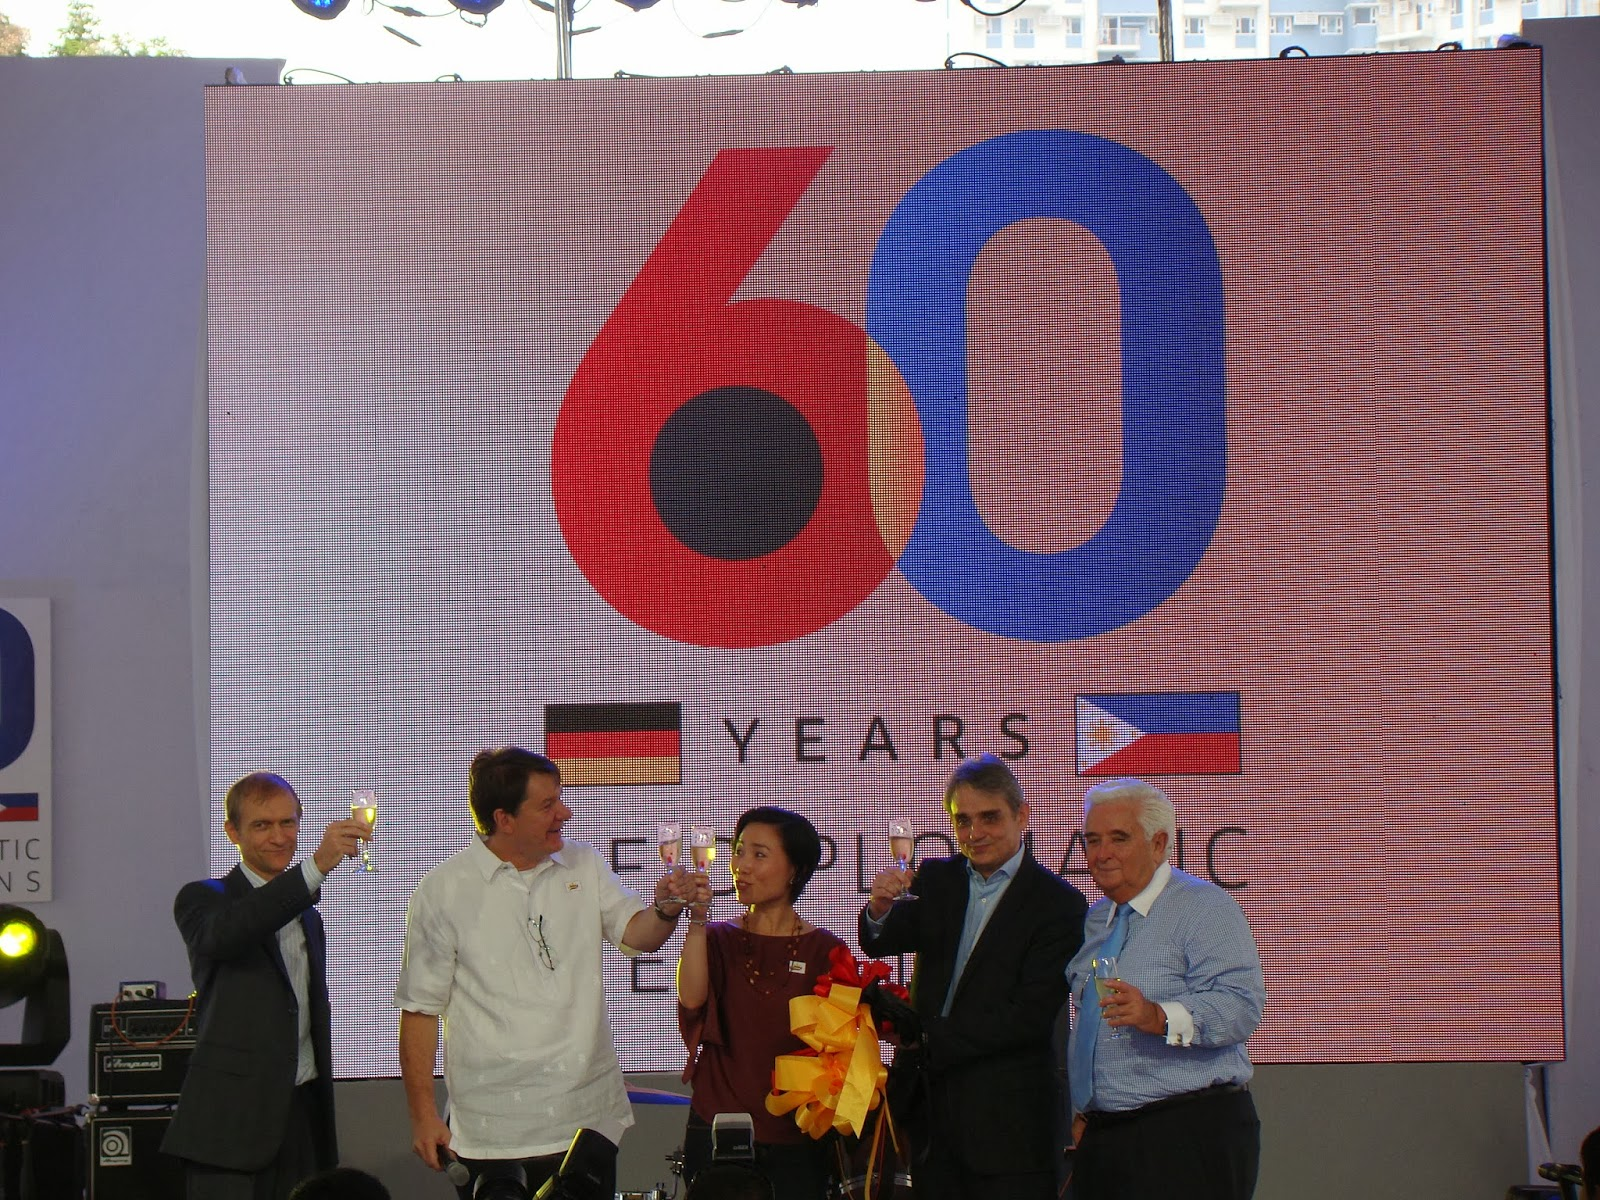 philippines and germany relationship with austria